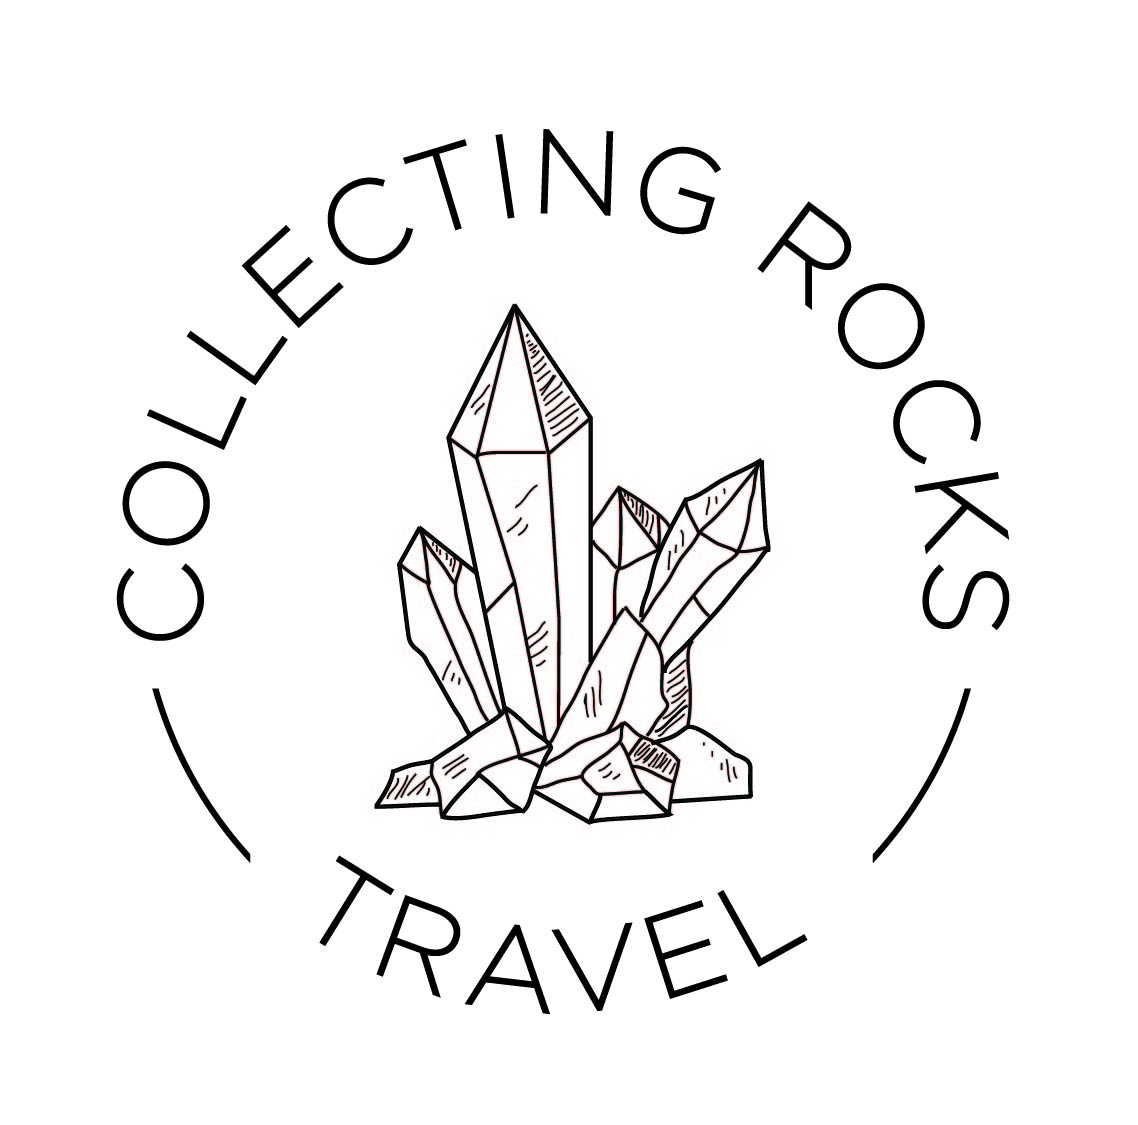 COLLECTING ROCKS TRAVEL